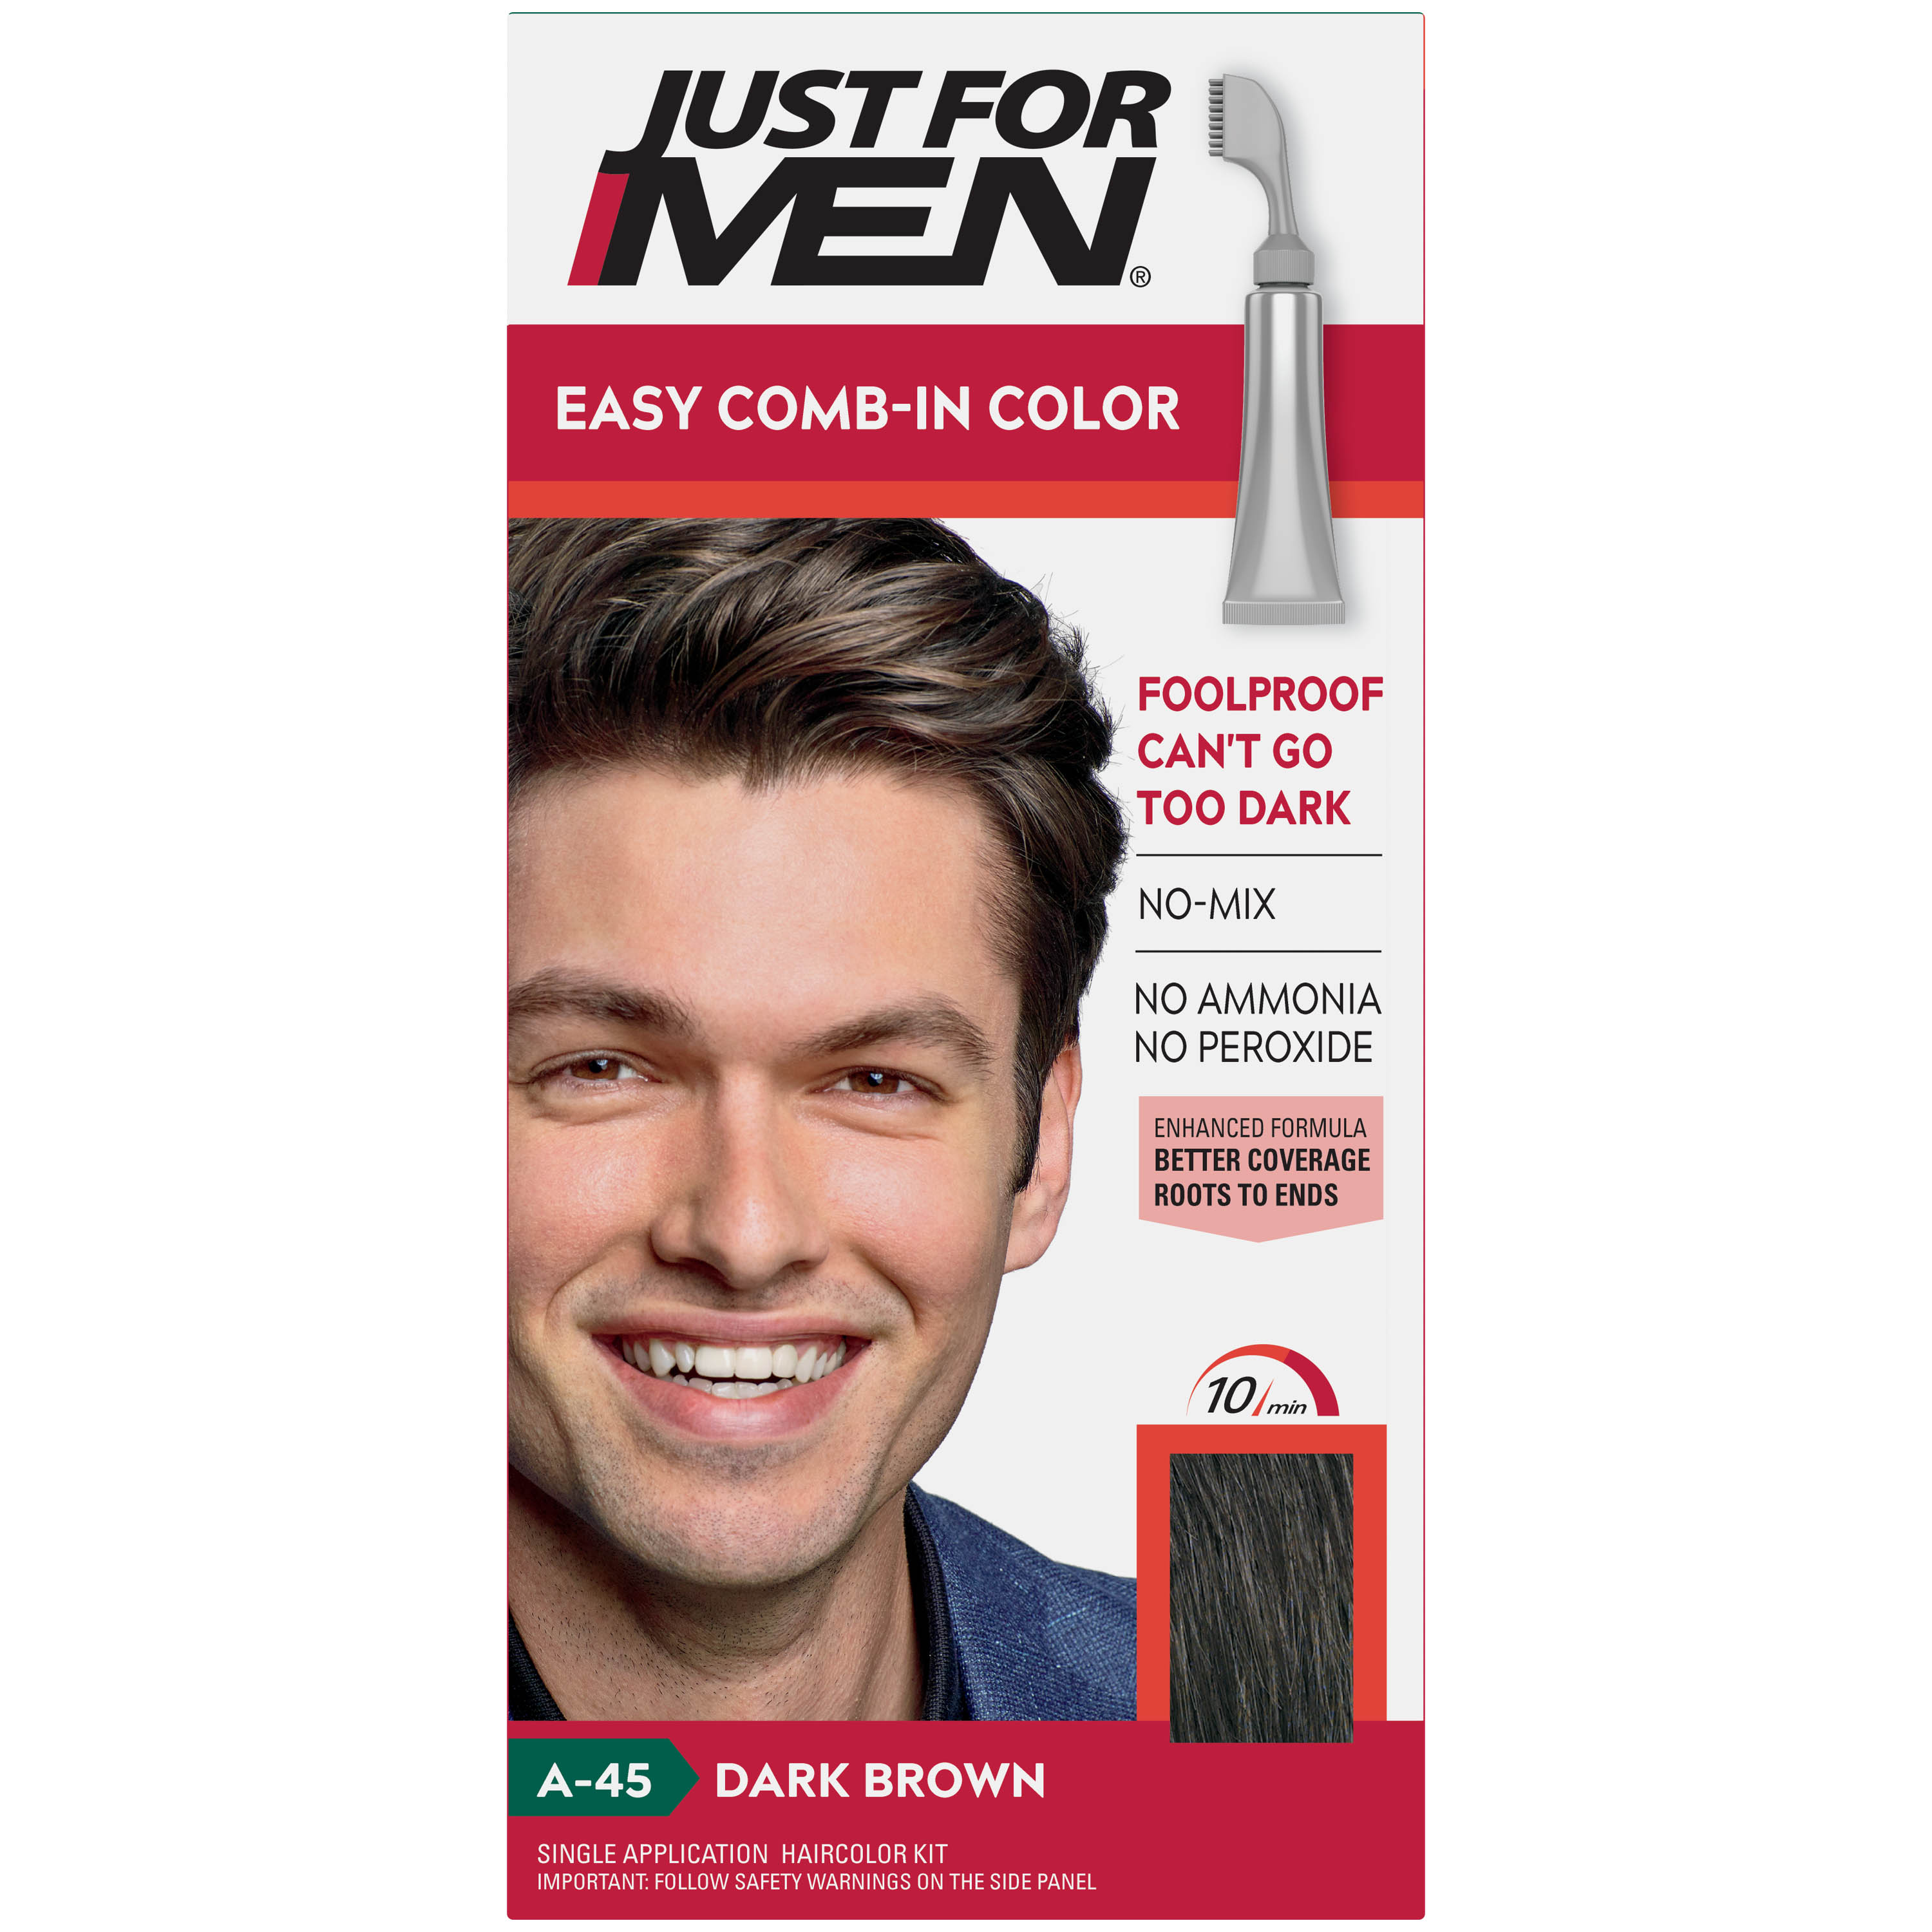 Just For Men Easy Comb In Color Gray Hair Coloring For Men With Comb Applicator Dark Brown A 45 Walmart Com Walmart Com